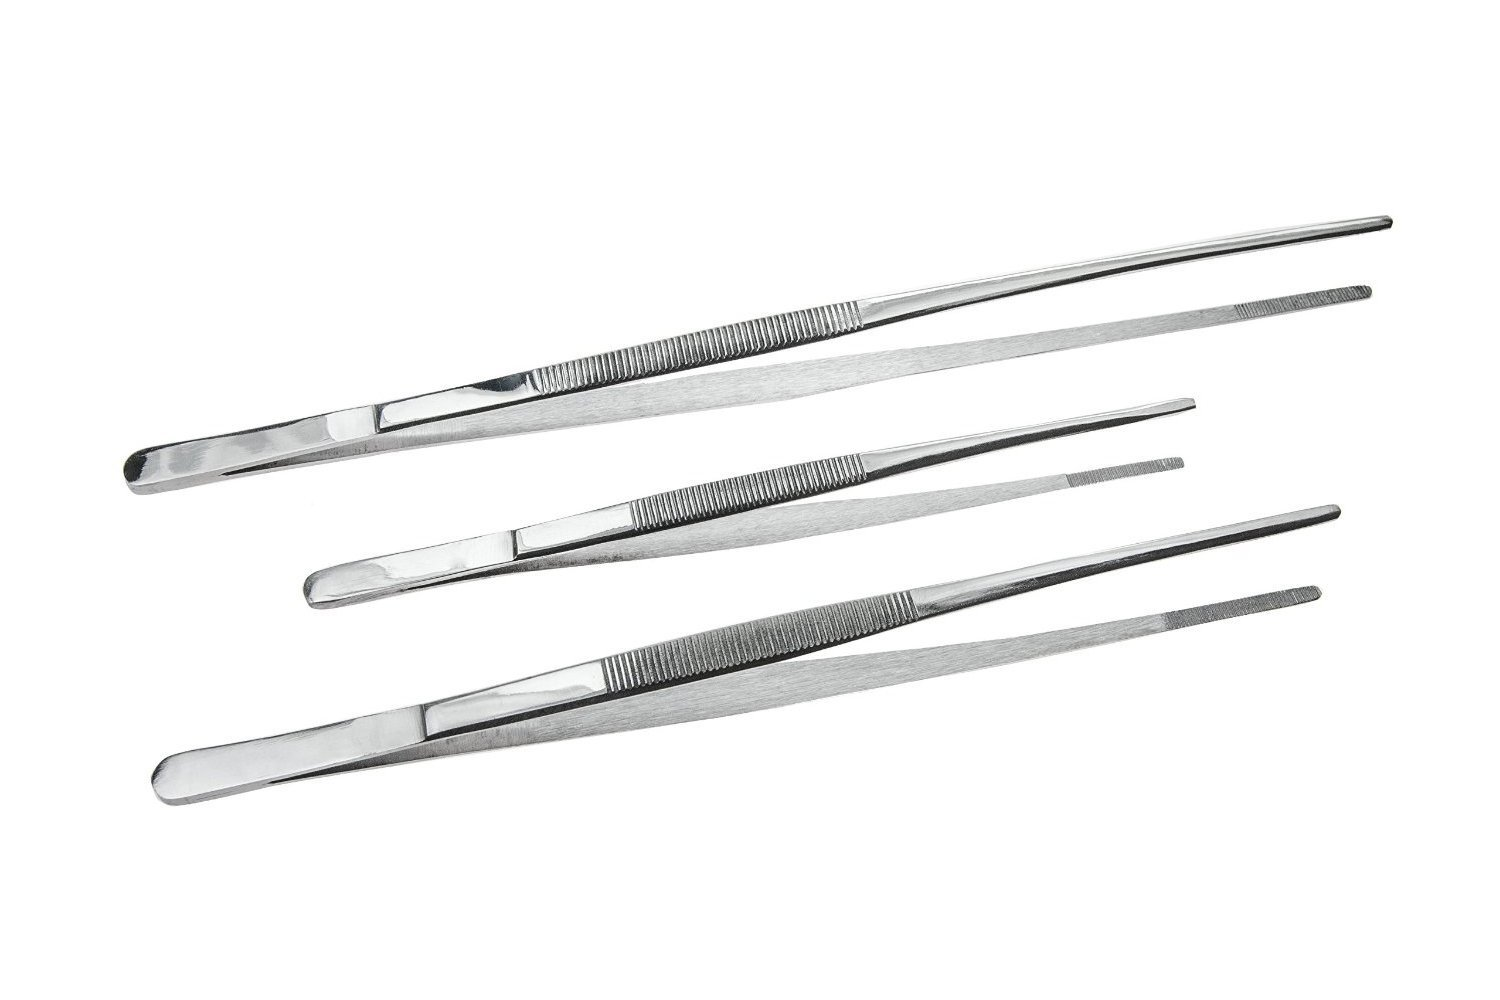 Saim Stainless Steel 3-Piece Tweezer Set with Serrated Tips - Excellent Tool, Lengths: 12', 10', 8' Lengths: 12 10 8 A0031